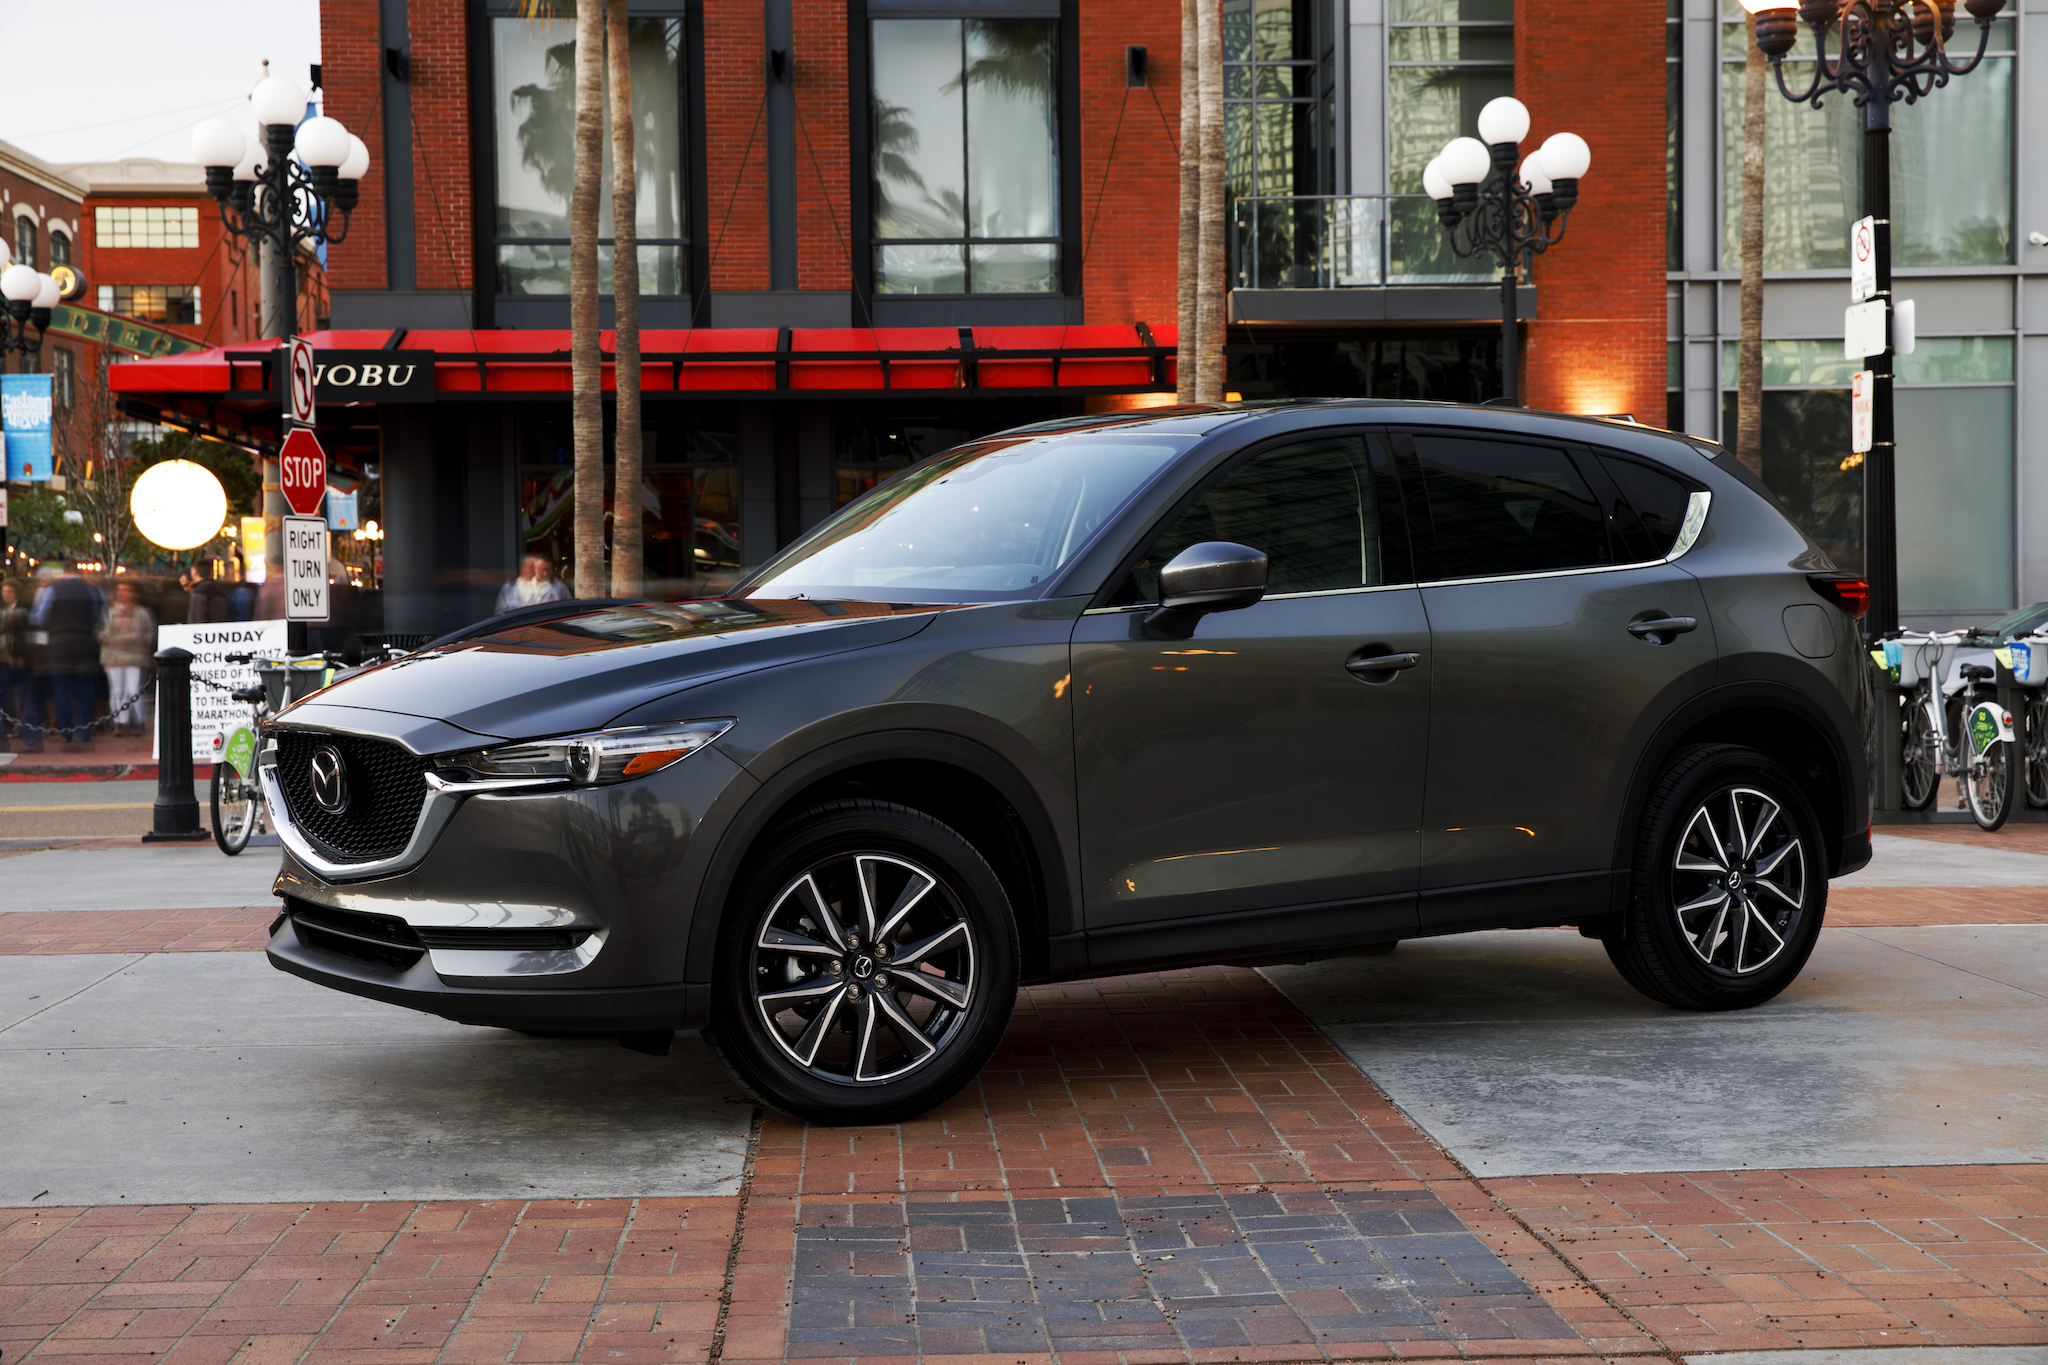 Mazda Aims At The Likes Of Bmw And Audi With Its New Crossover